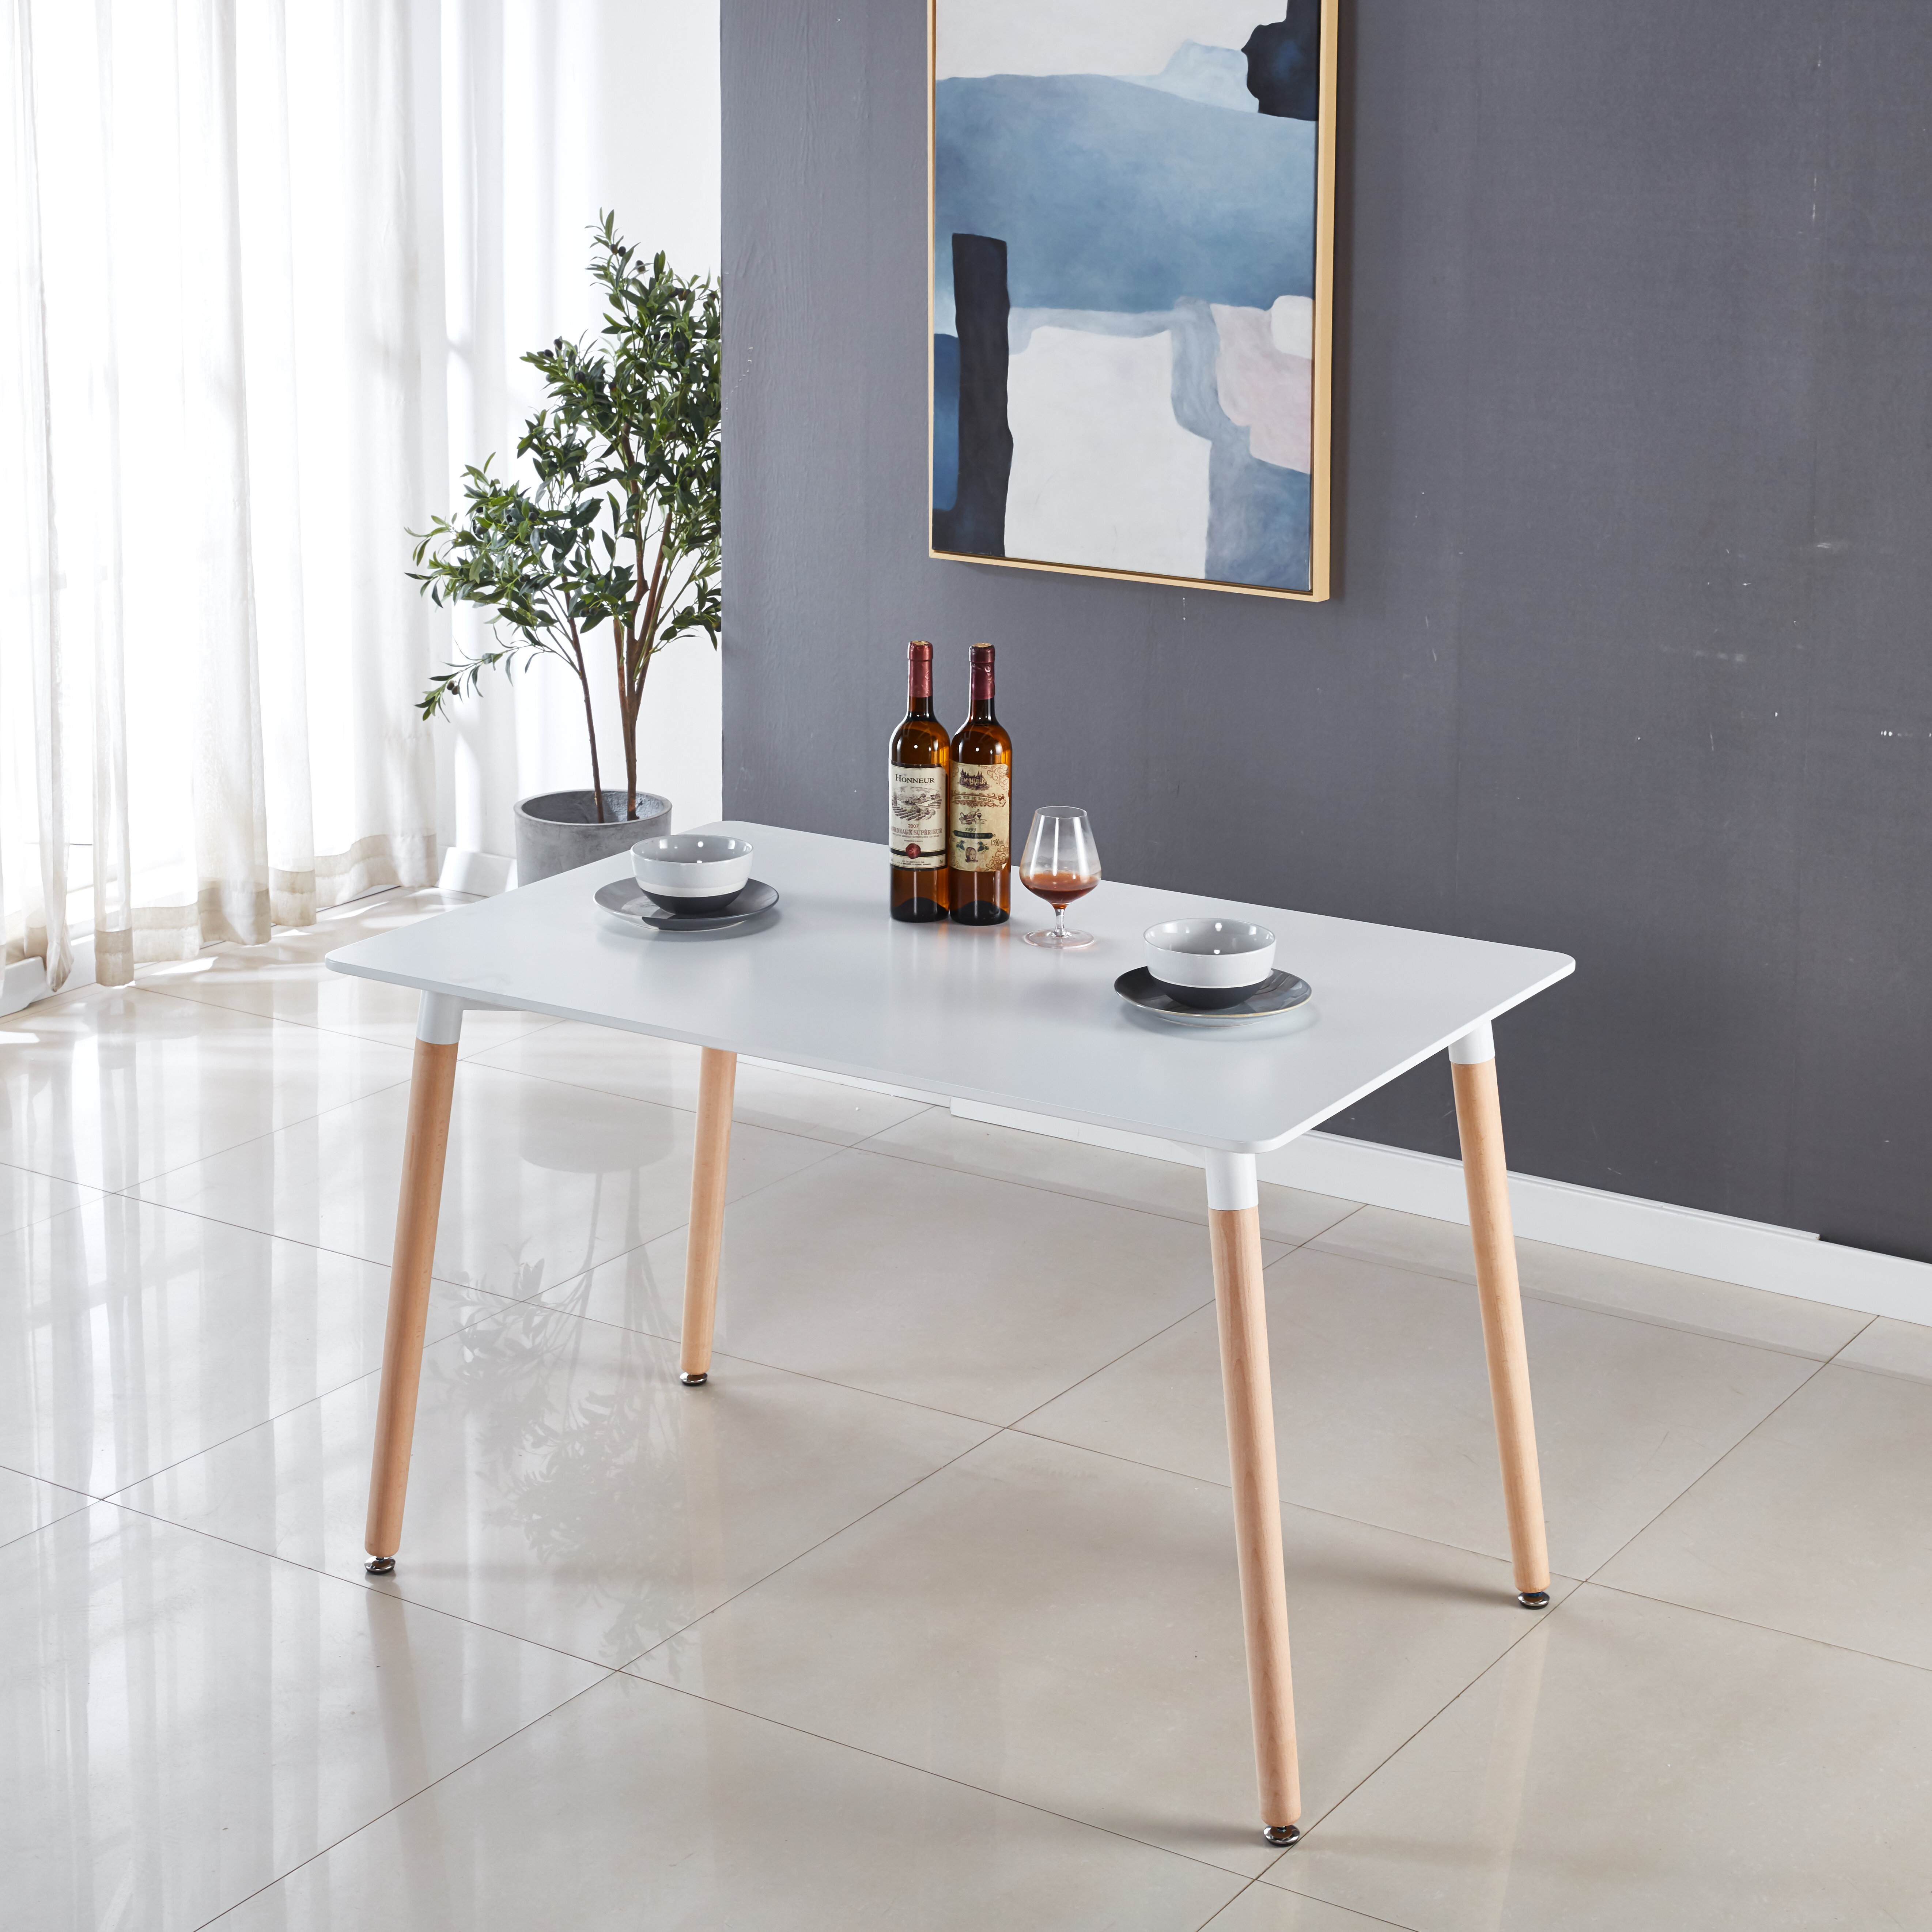 Pine Kitchen Dining Tables Under 250 You Ll Love In 2021 Wayfair